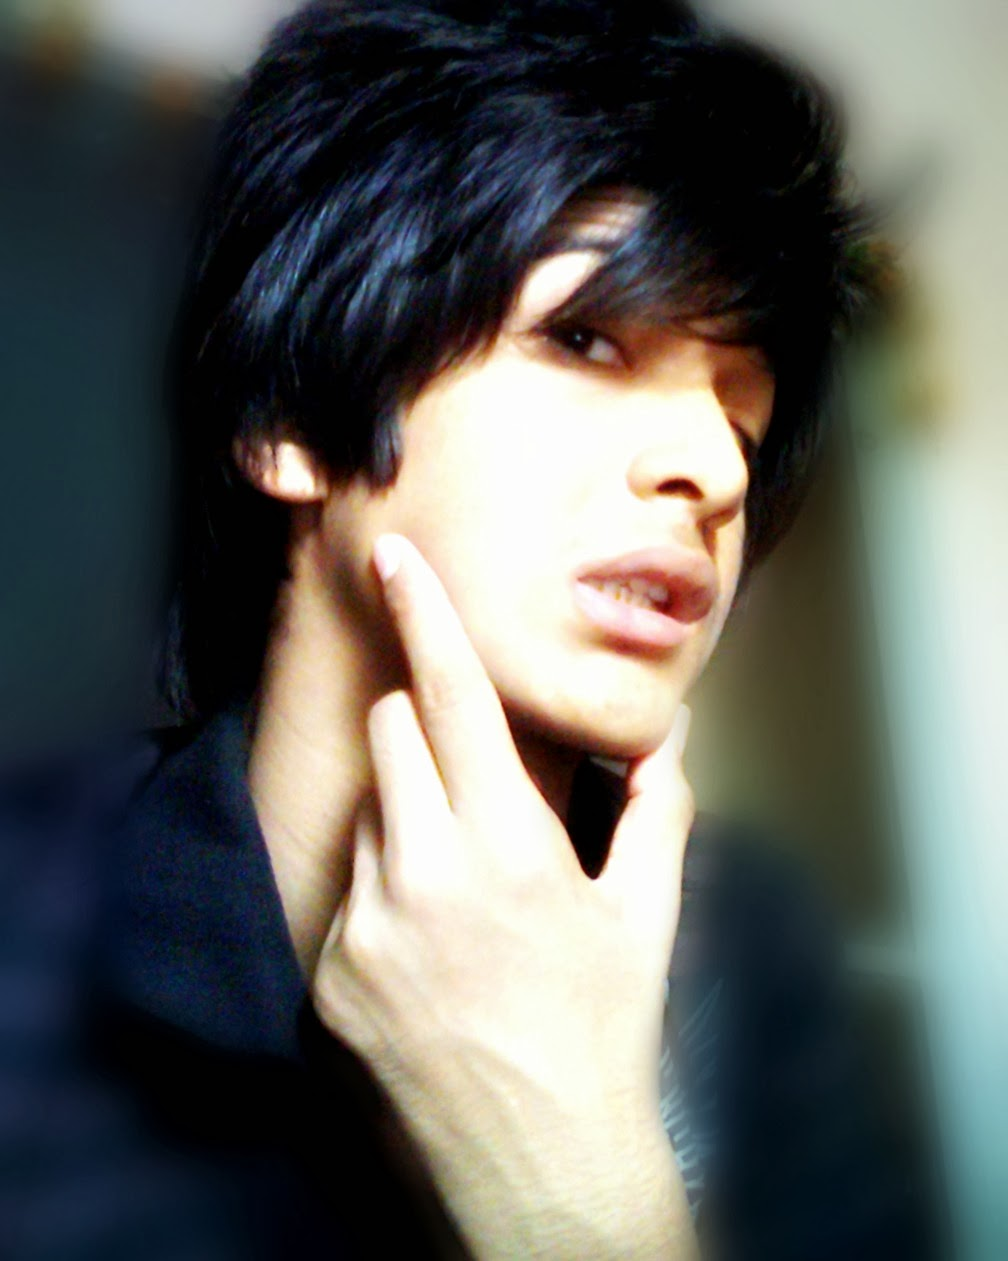 stylish boys profile picture profile pictures for facebook